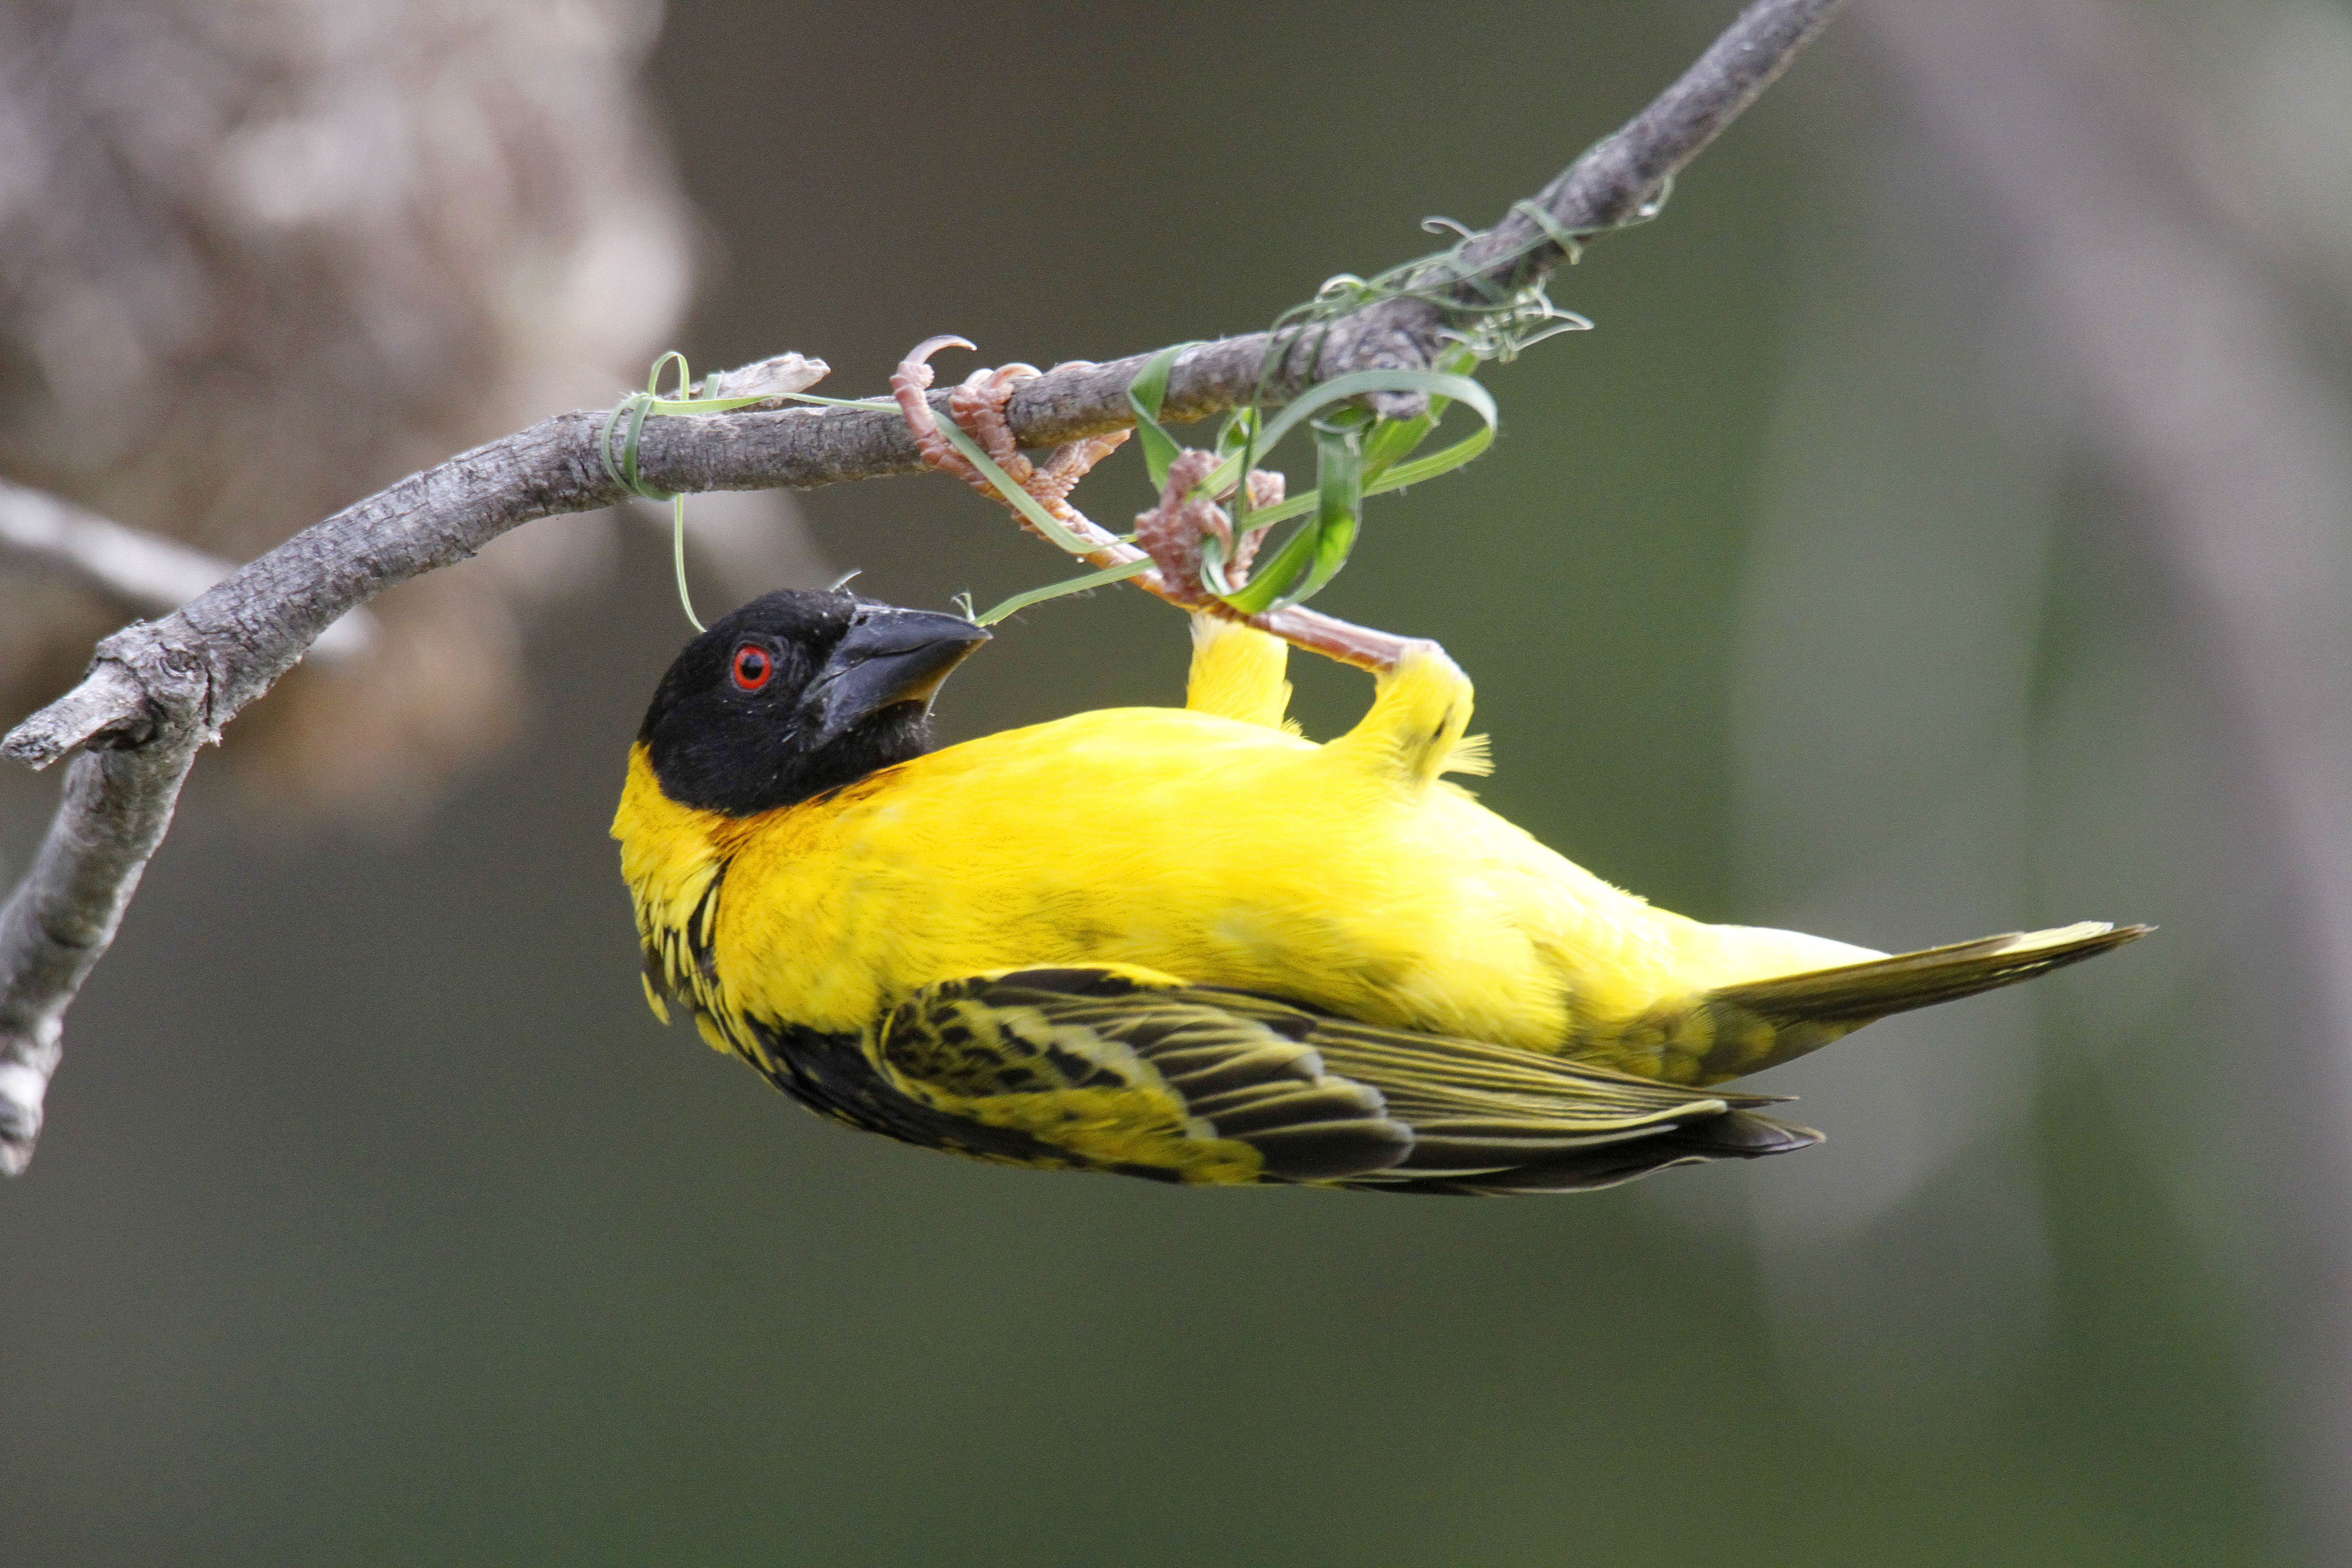 Spotted-Backed Weaver nest building.